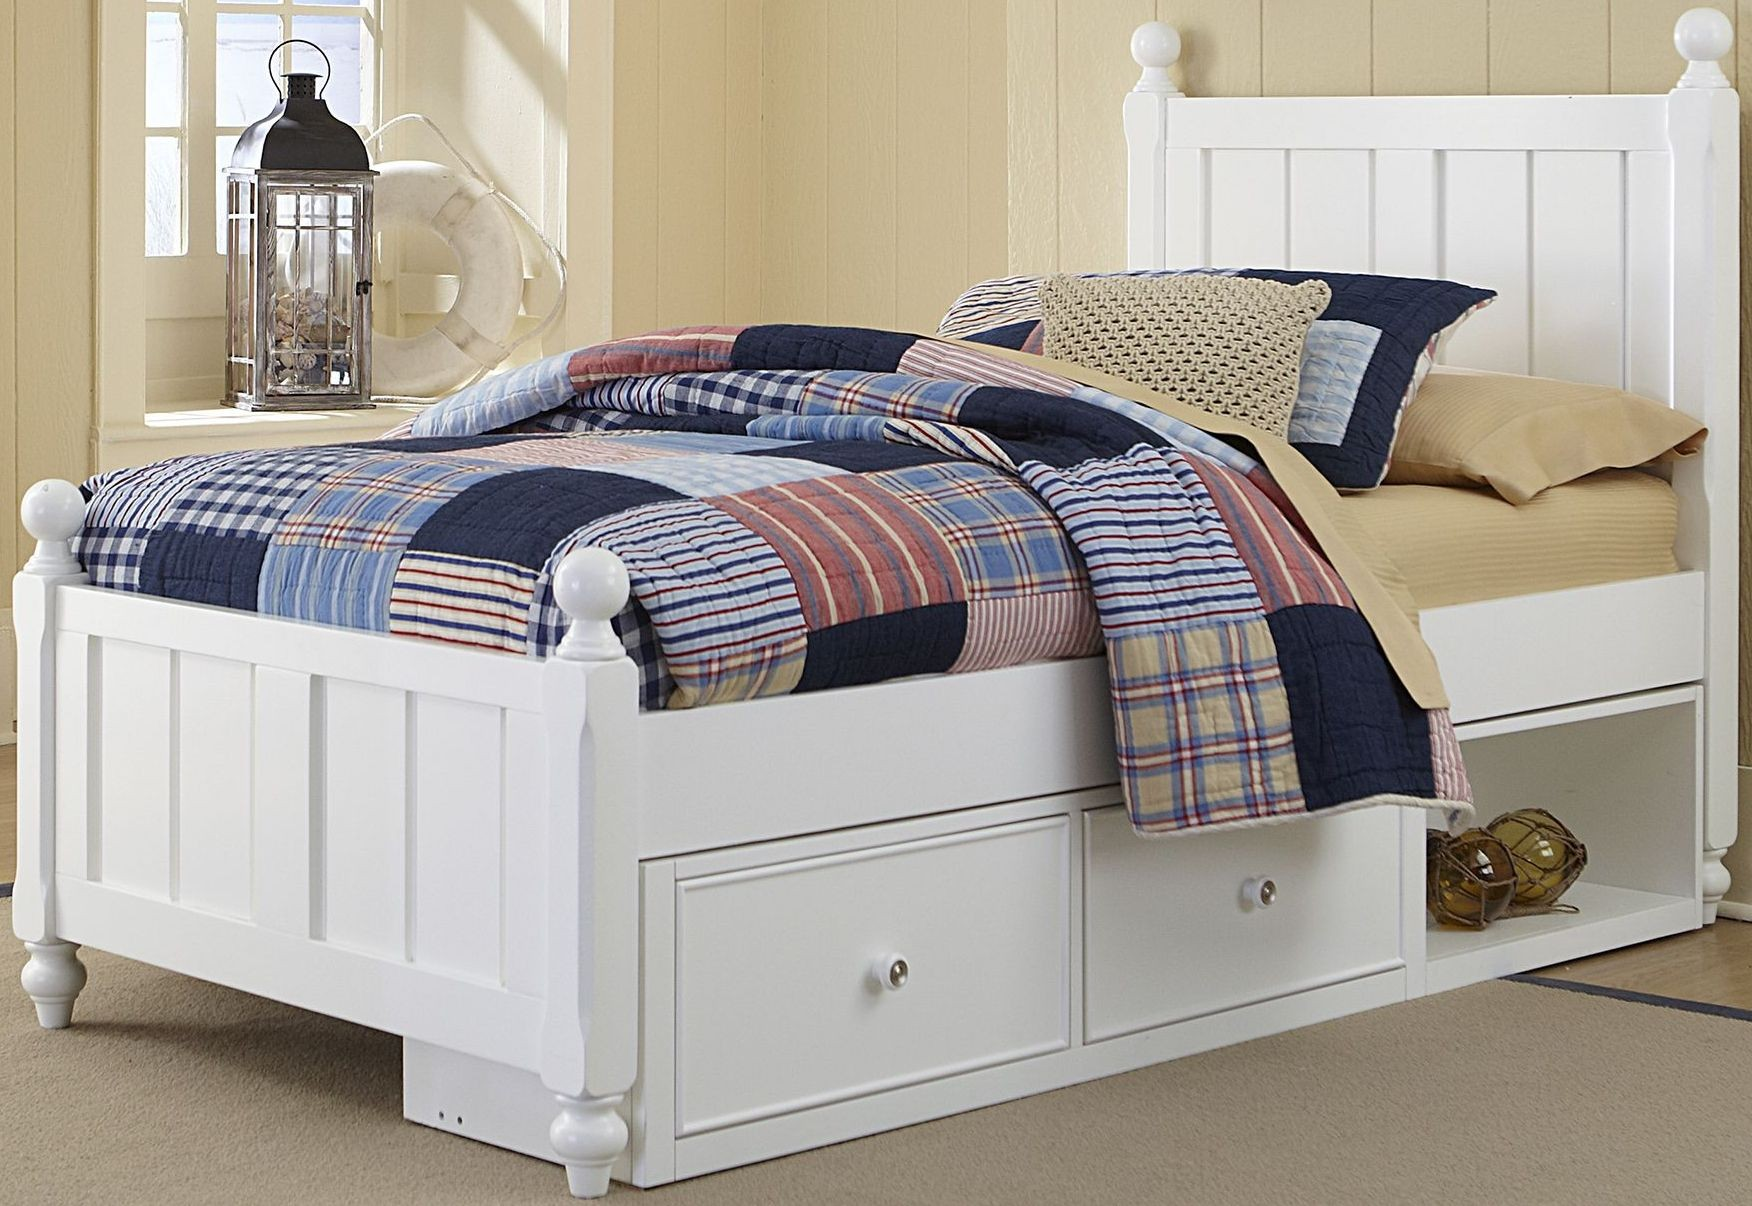 Details About White 3 Piece Storage Drawers Twin Bed Box: Lake House White Kennedy Twin Panel Bed With Storage From